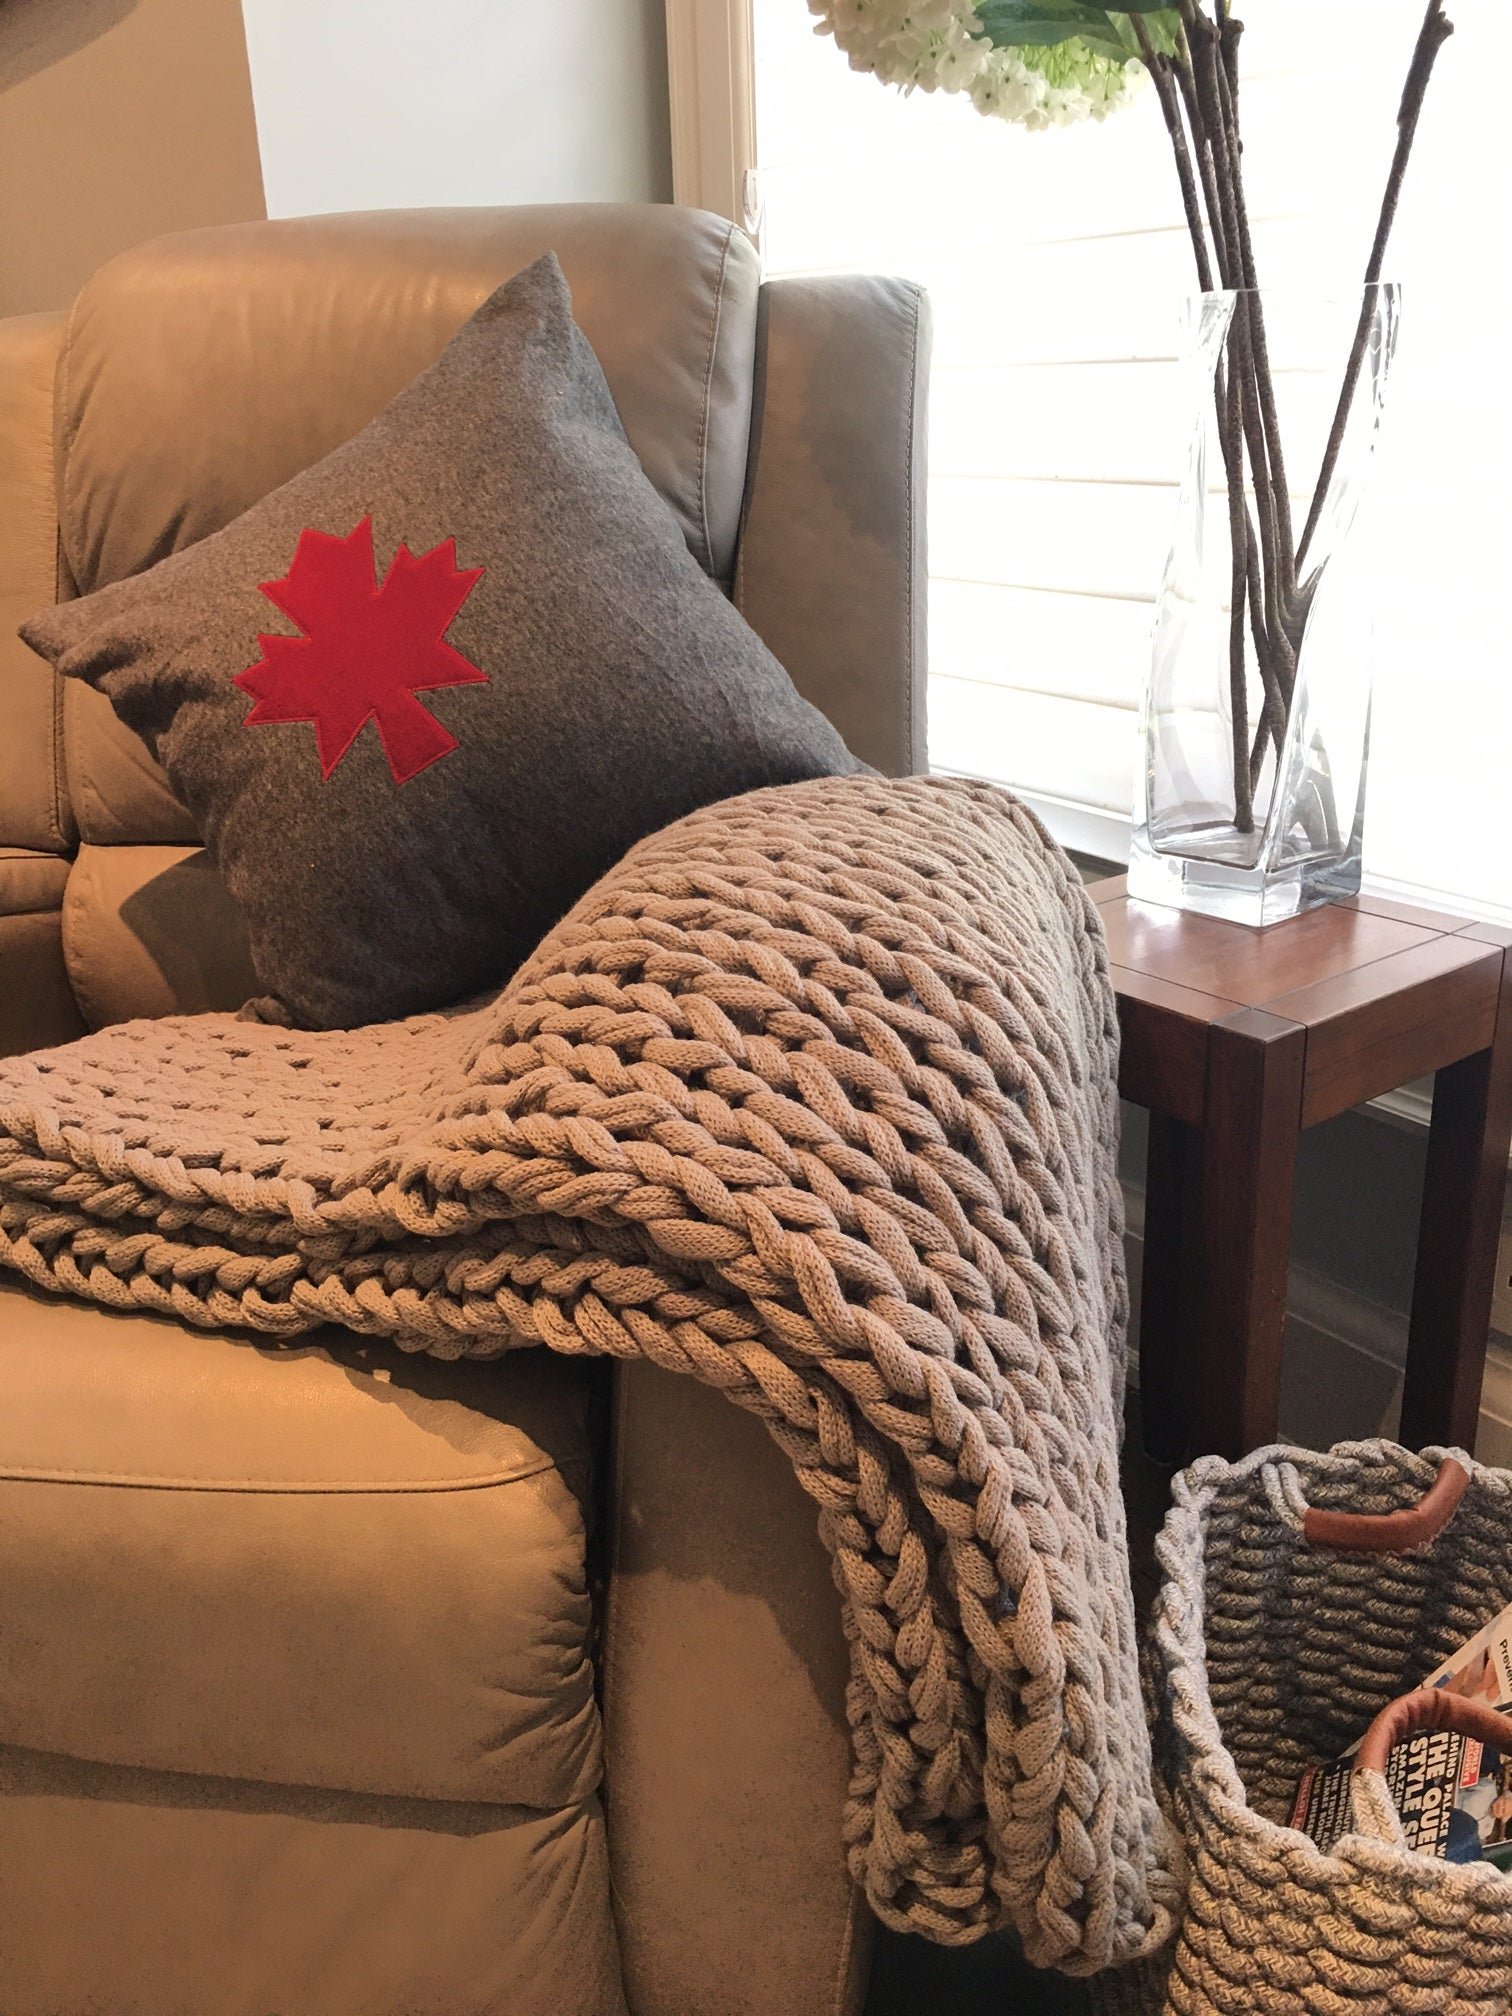 Cozy Corner Holiday Gift - $175